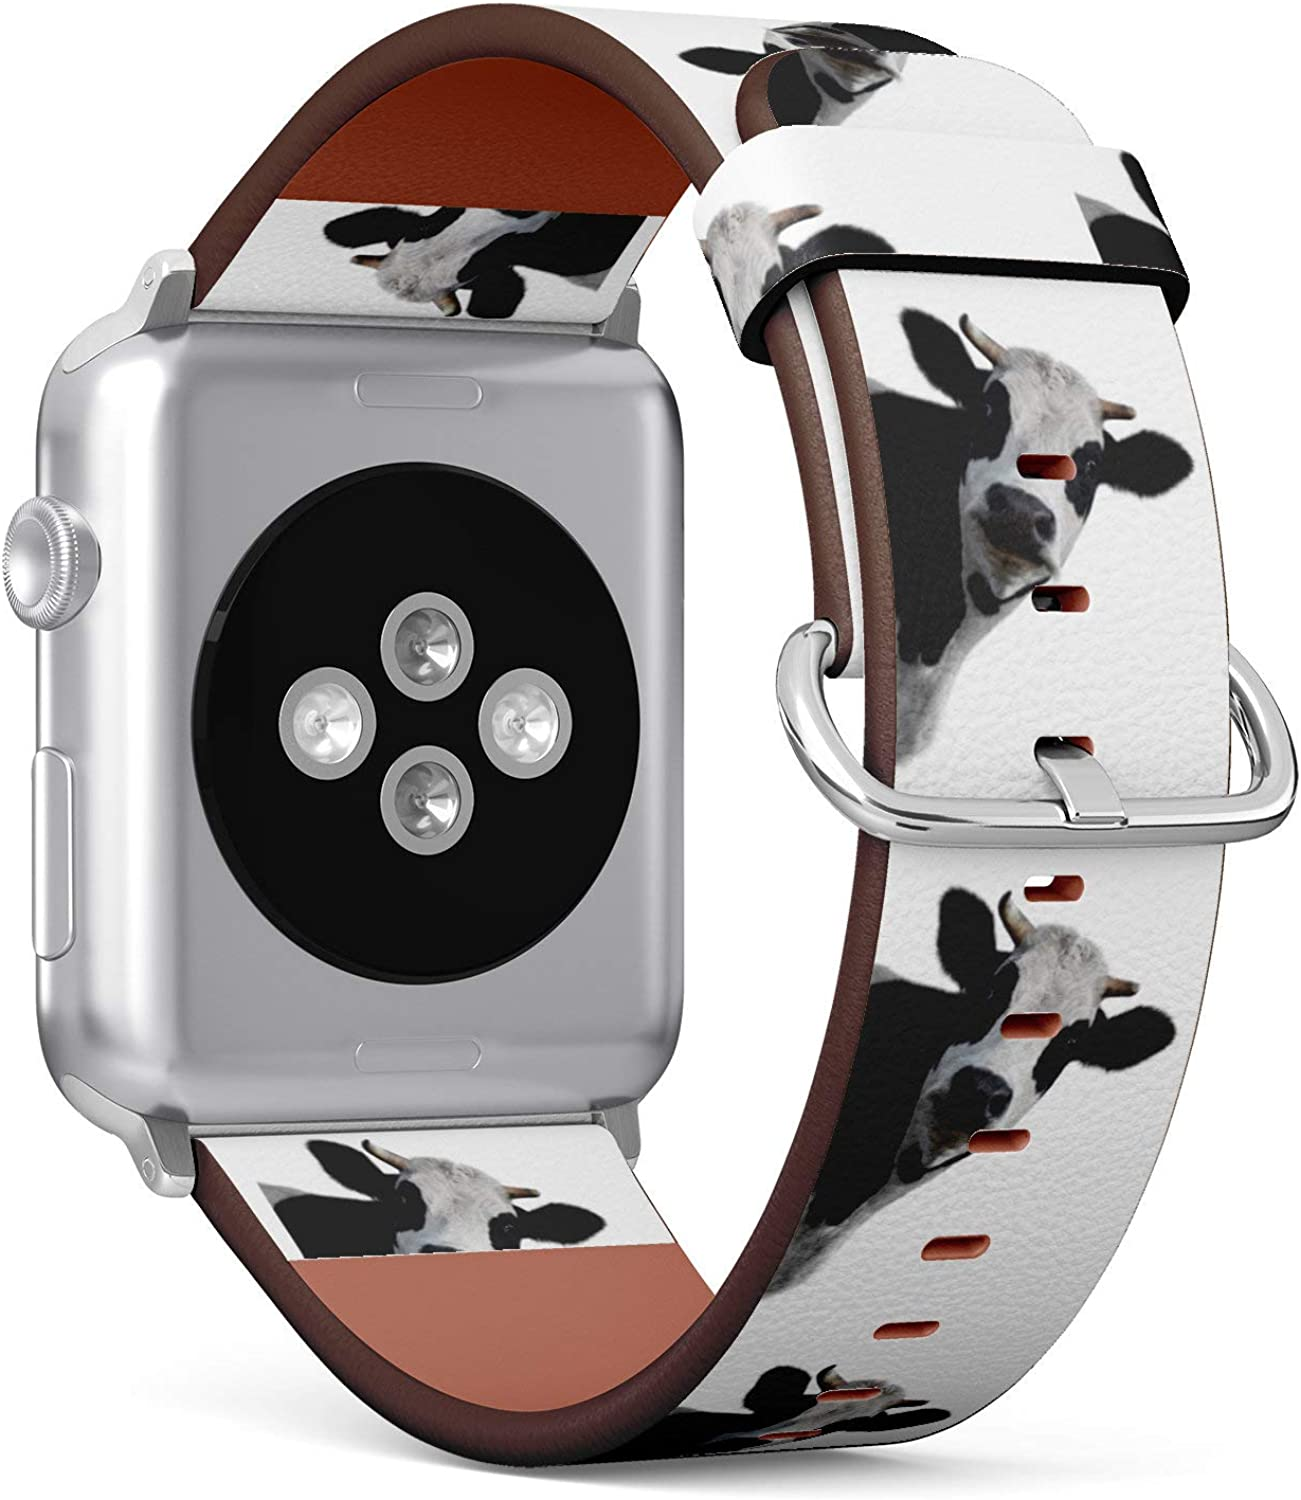 (Funny Milk Cow) Patterned Leather Wristband Strap for Apple Watch Series 4/3/2/1 gen,Replacement for iWatch 42mm / 44mm Bands